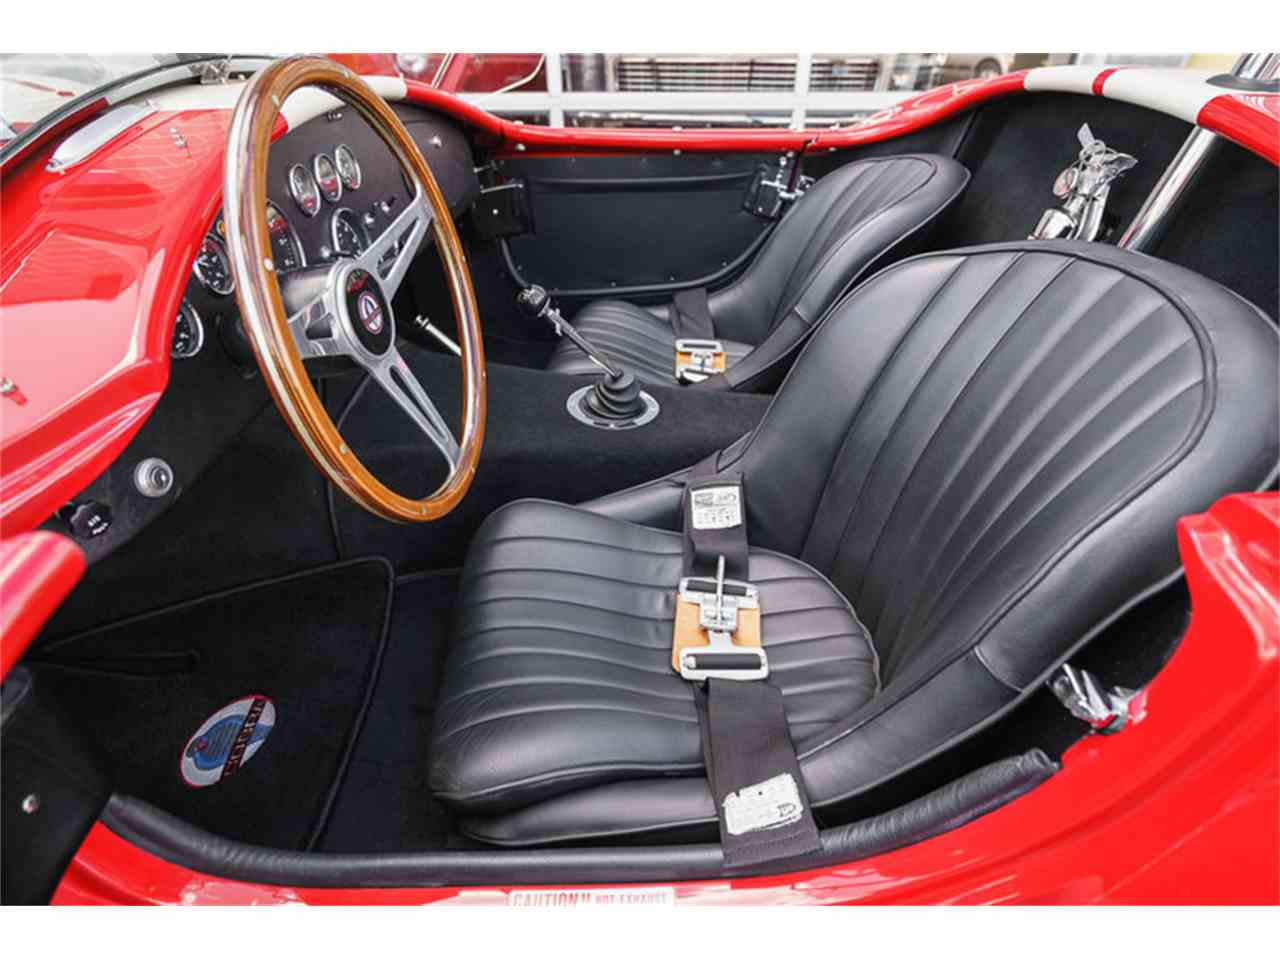 Large Picture of Classic '65 Superformance Cobra located in Missouri - $64,995.00 Offered by Fast Lane Classic Cars Inc. - I3CA